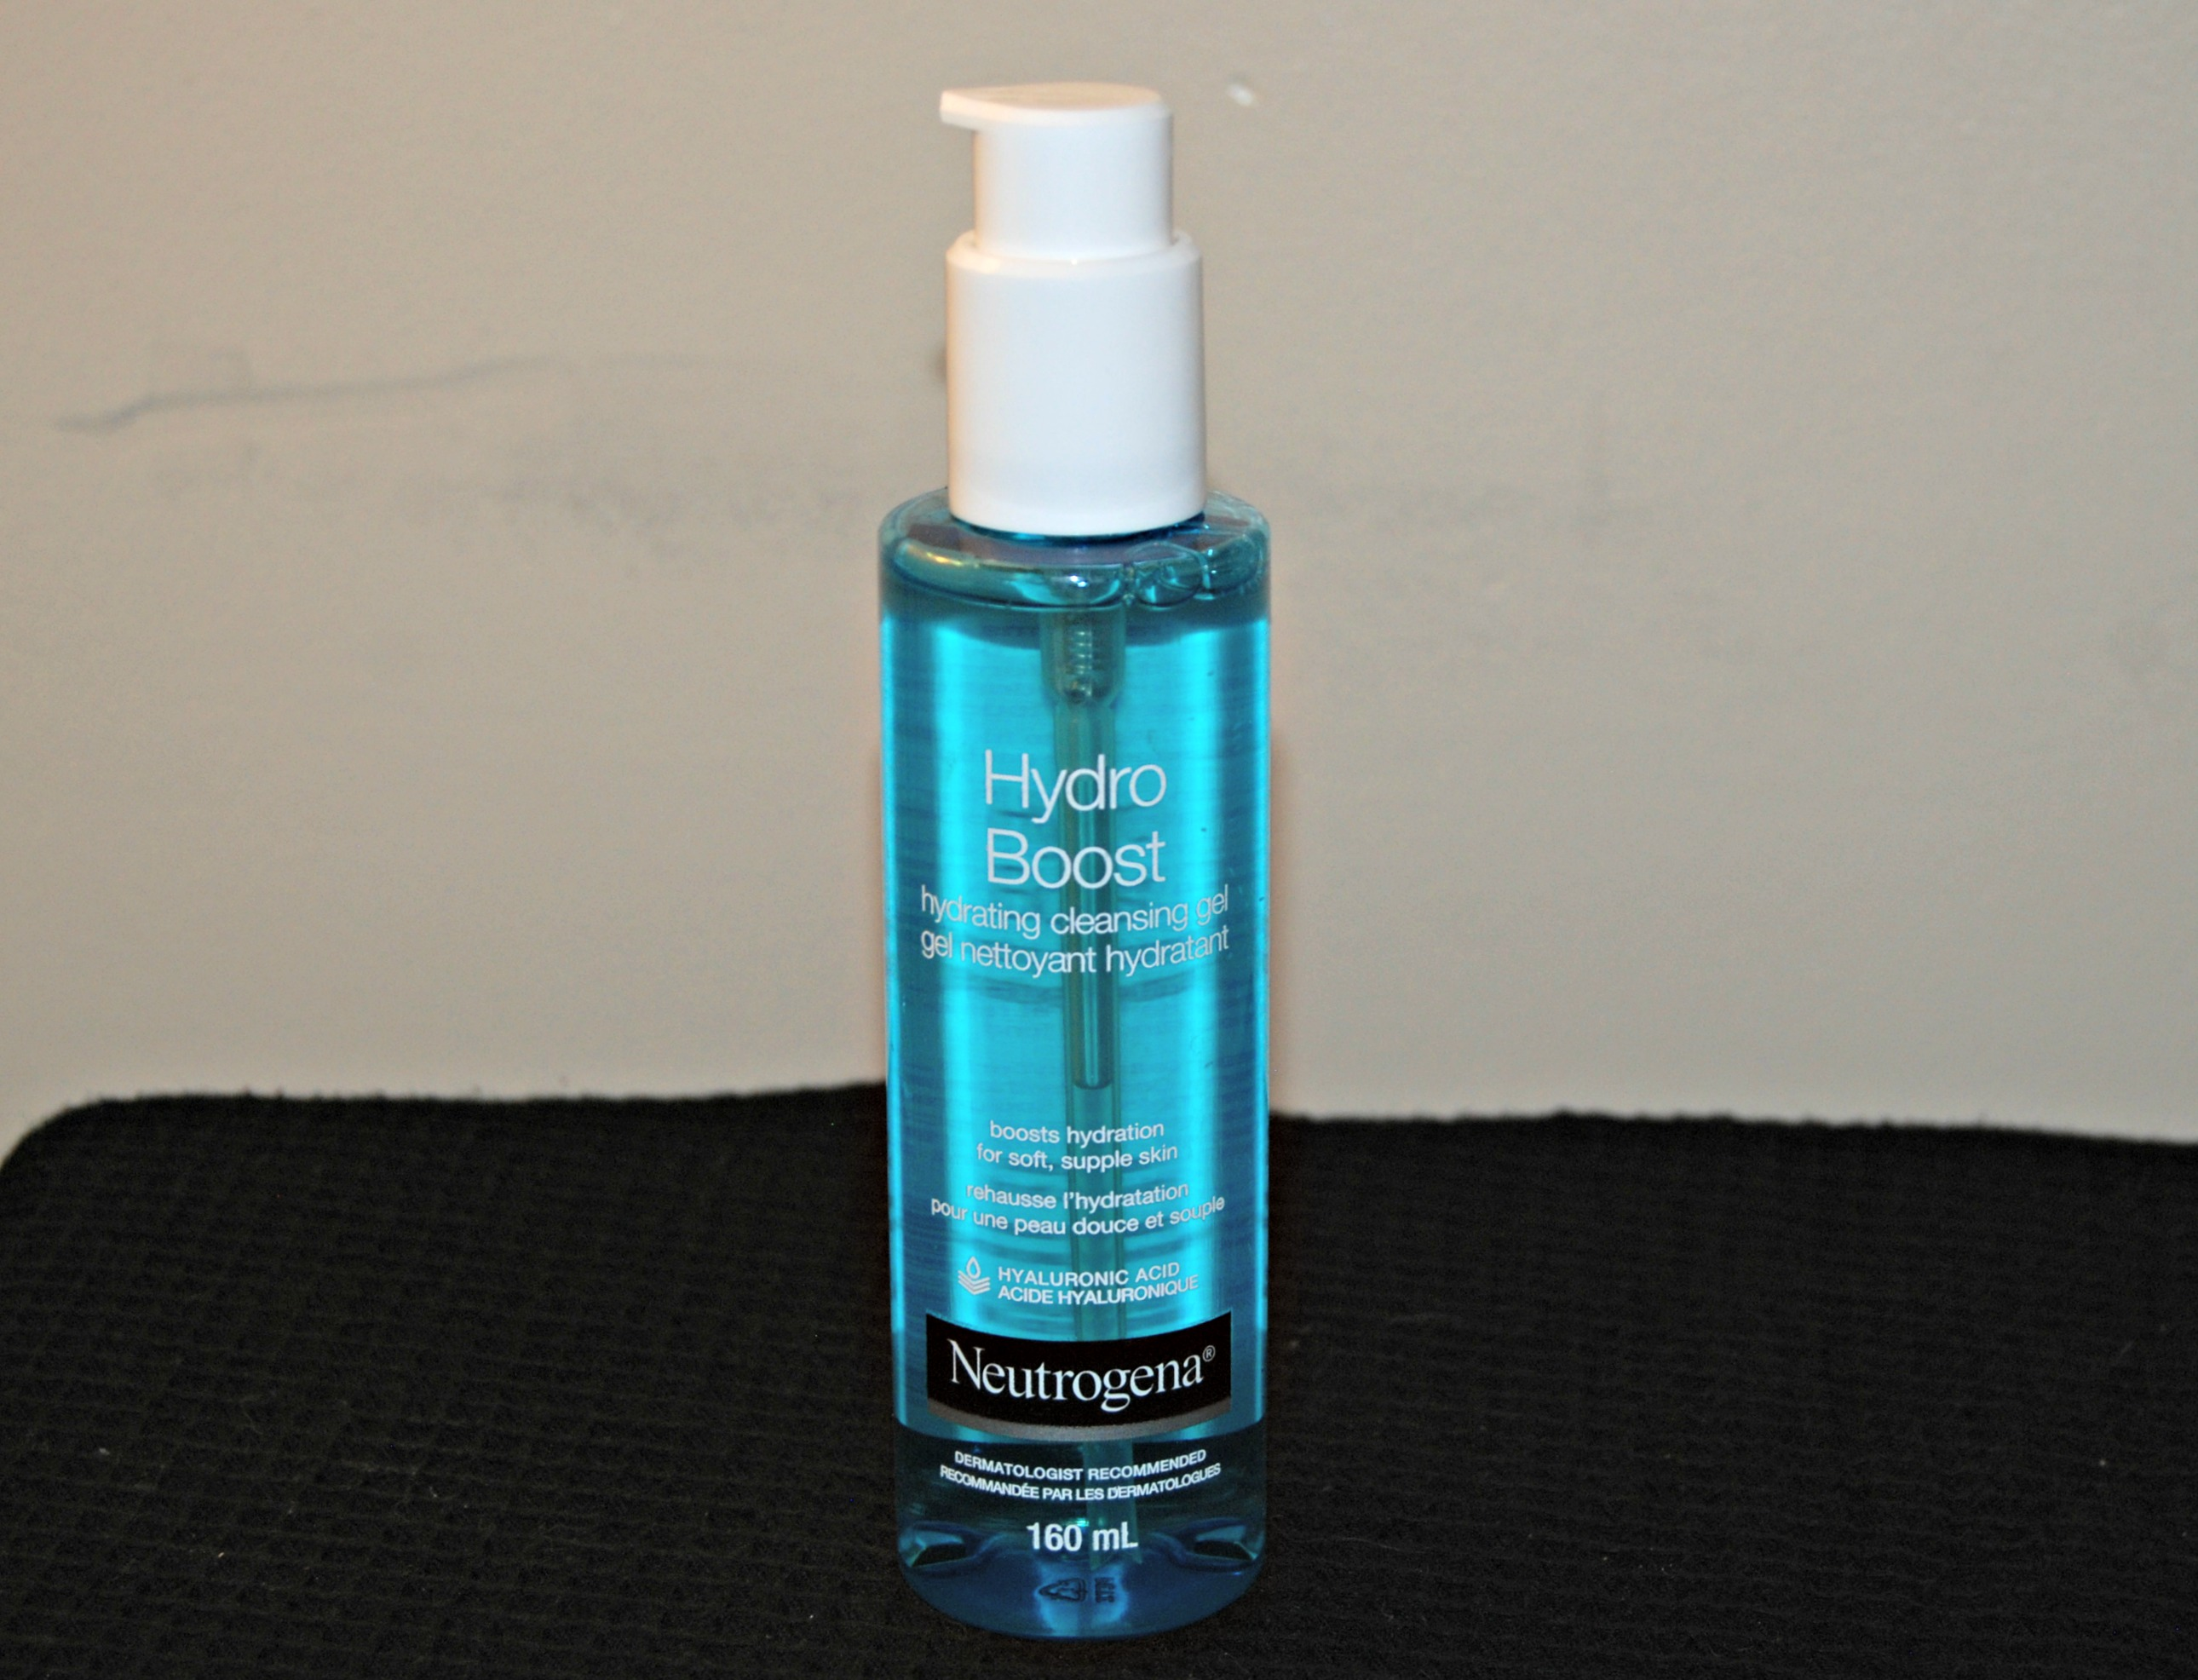 Hydro Boost Hydrating Cleansing Gel & Oil-Free Makeup Remover by Neutrogena #9